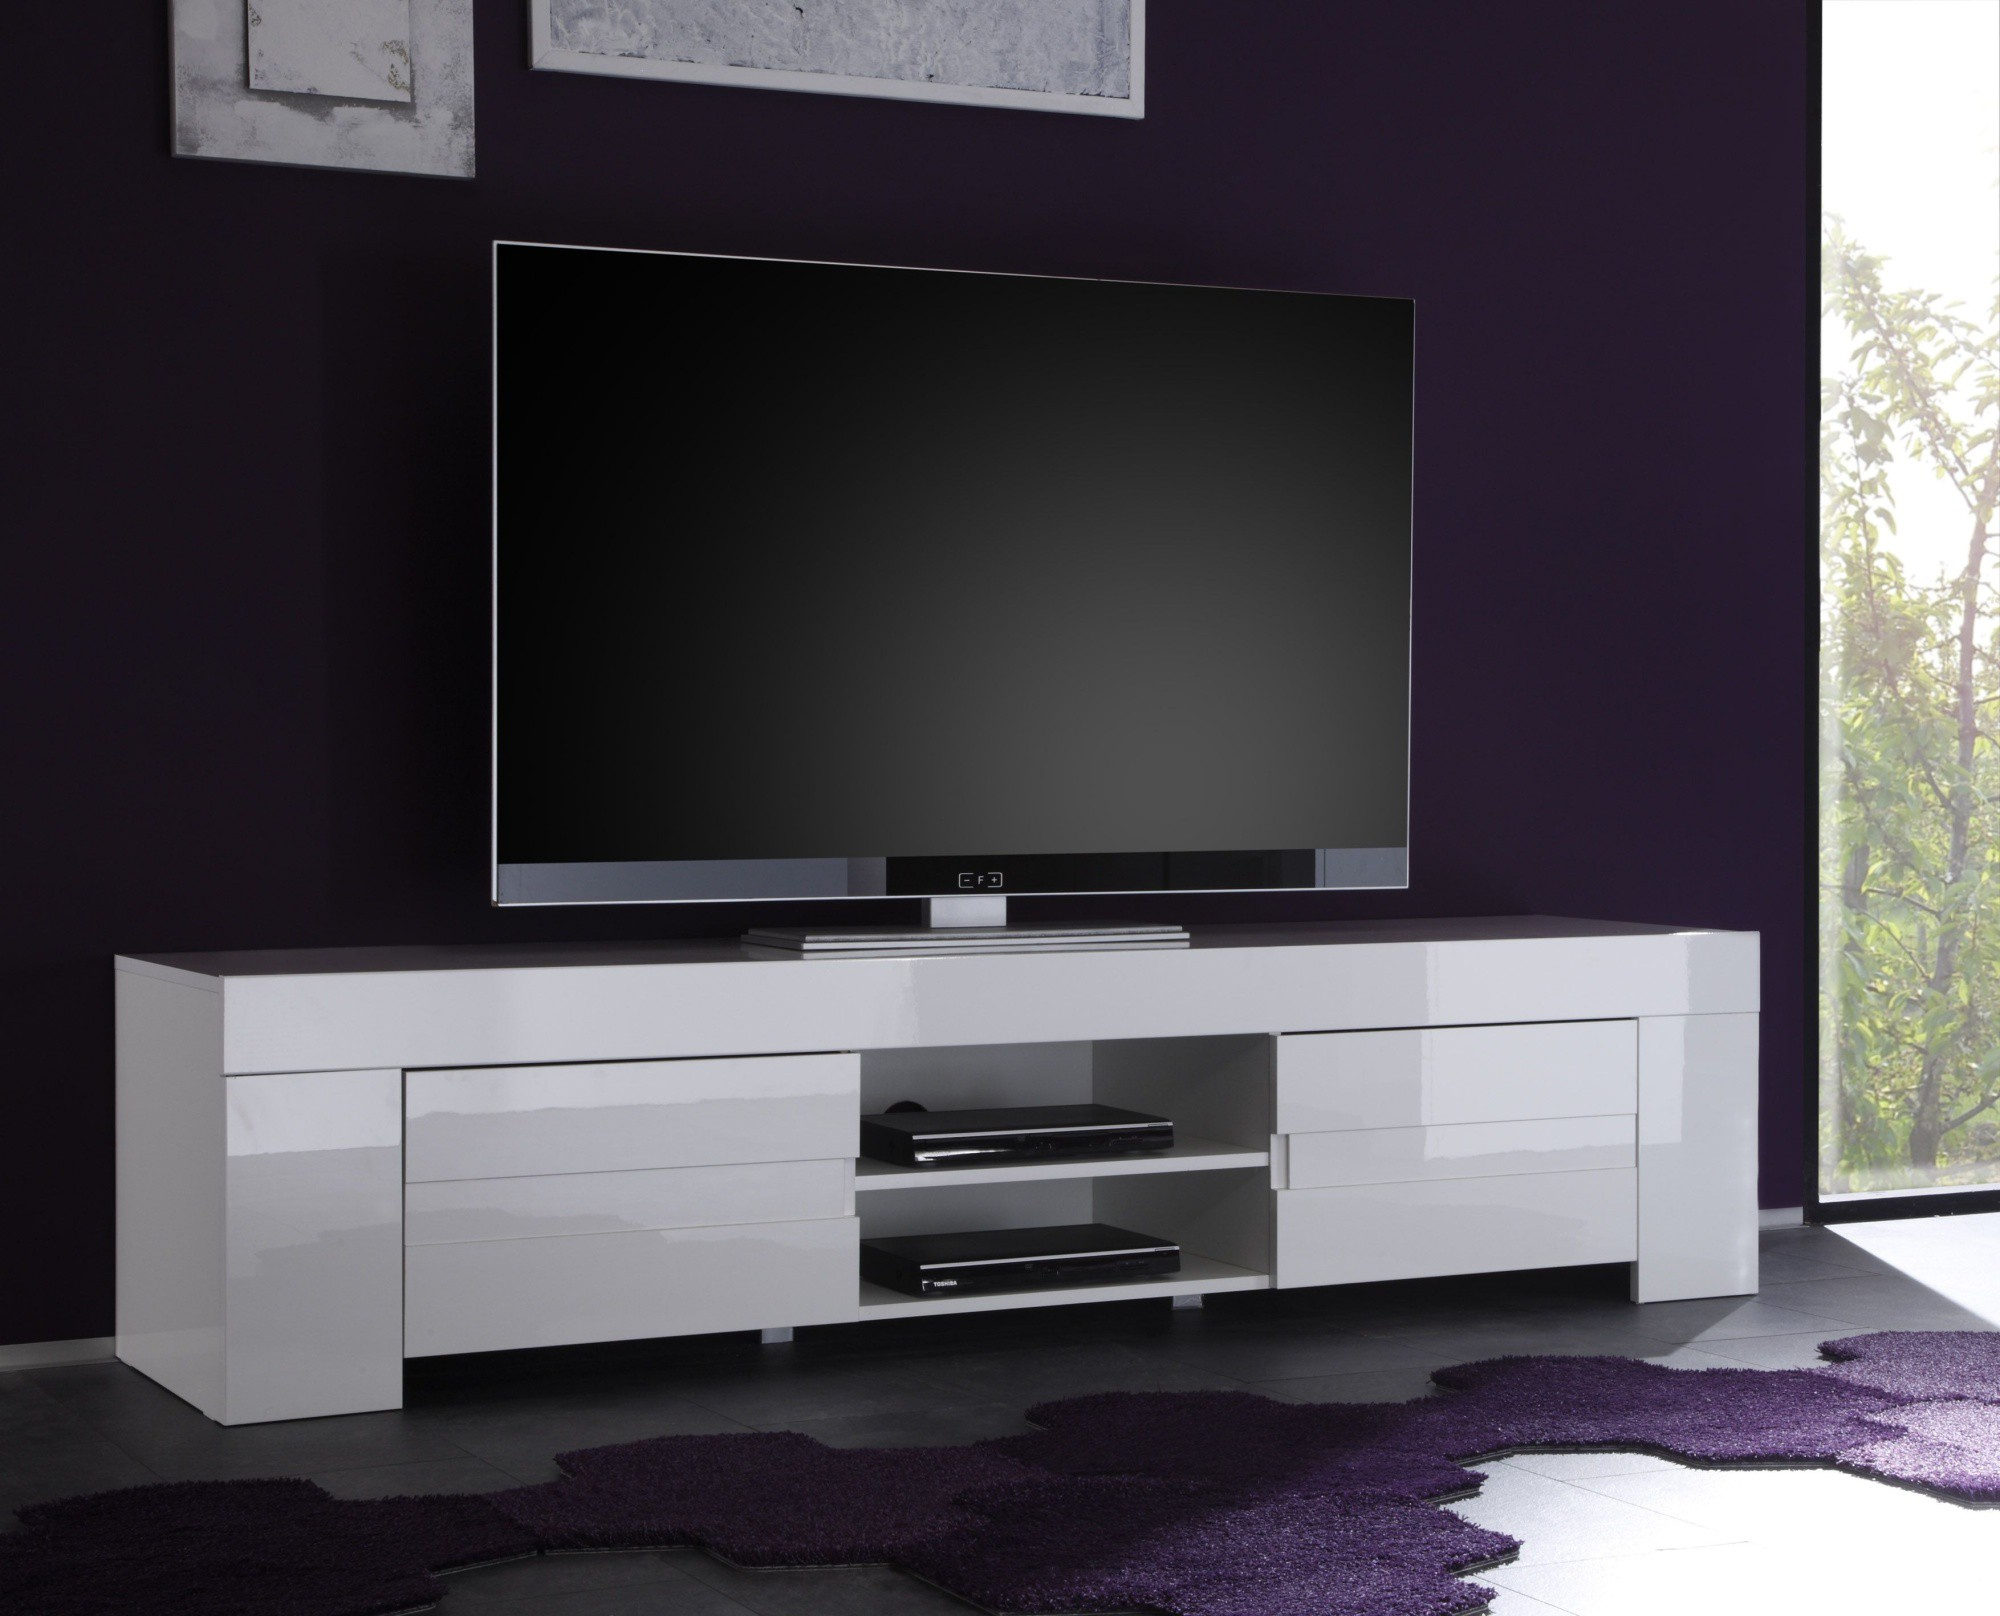 Meuble tv simple pas cher id es de d coration int rieure french decor - Meuble tv simple ...